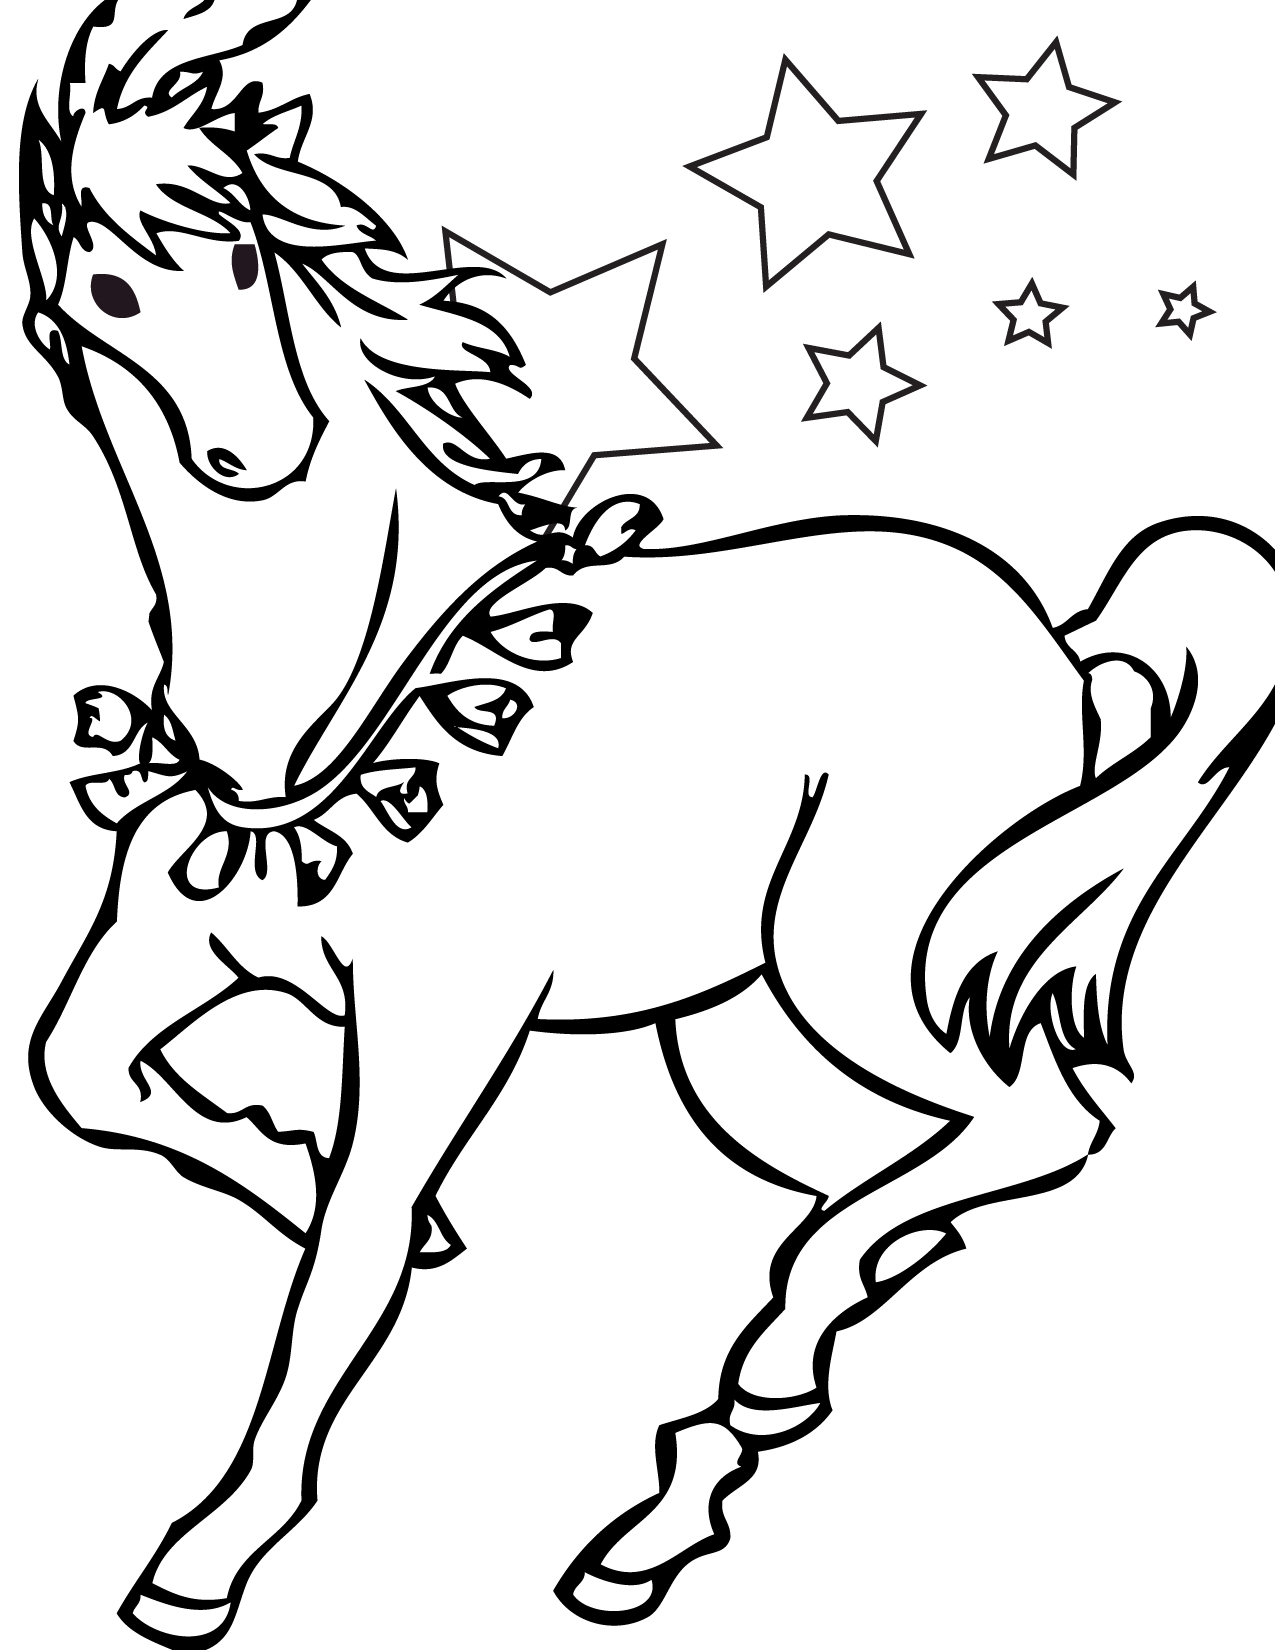 Horse Acts Coloring Page